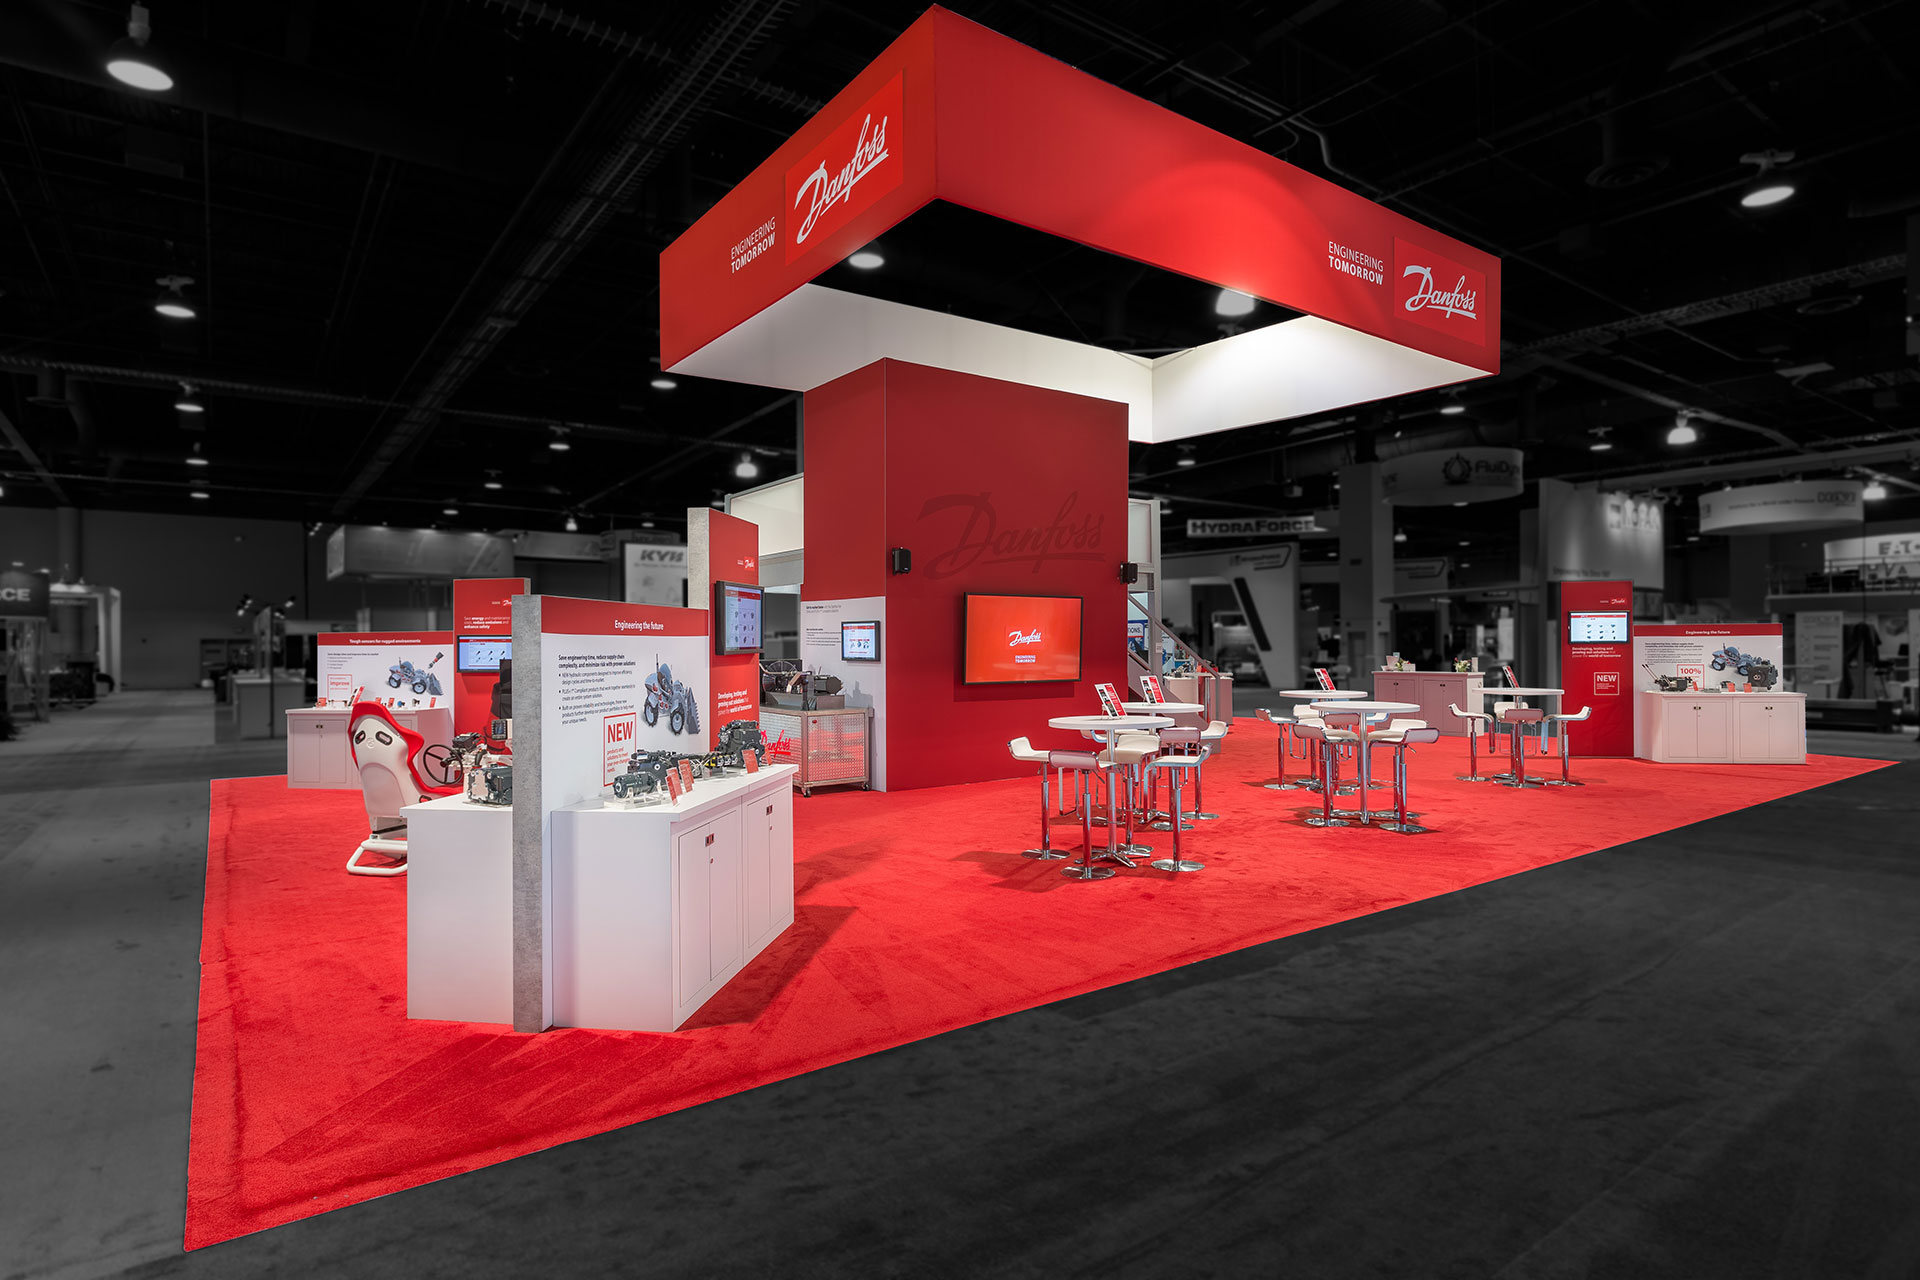 Exhibition Booth Photography : Trade show exhibit photography david marquardt architectural